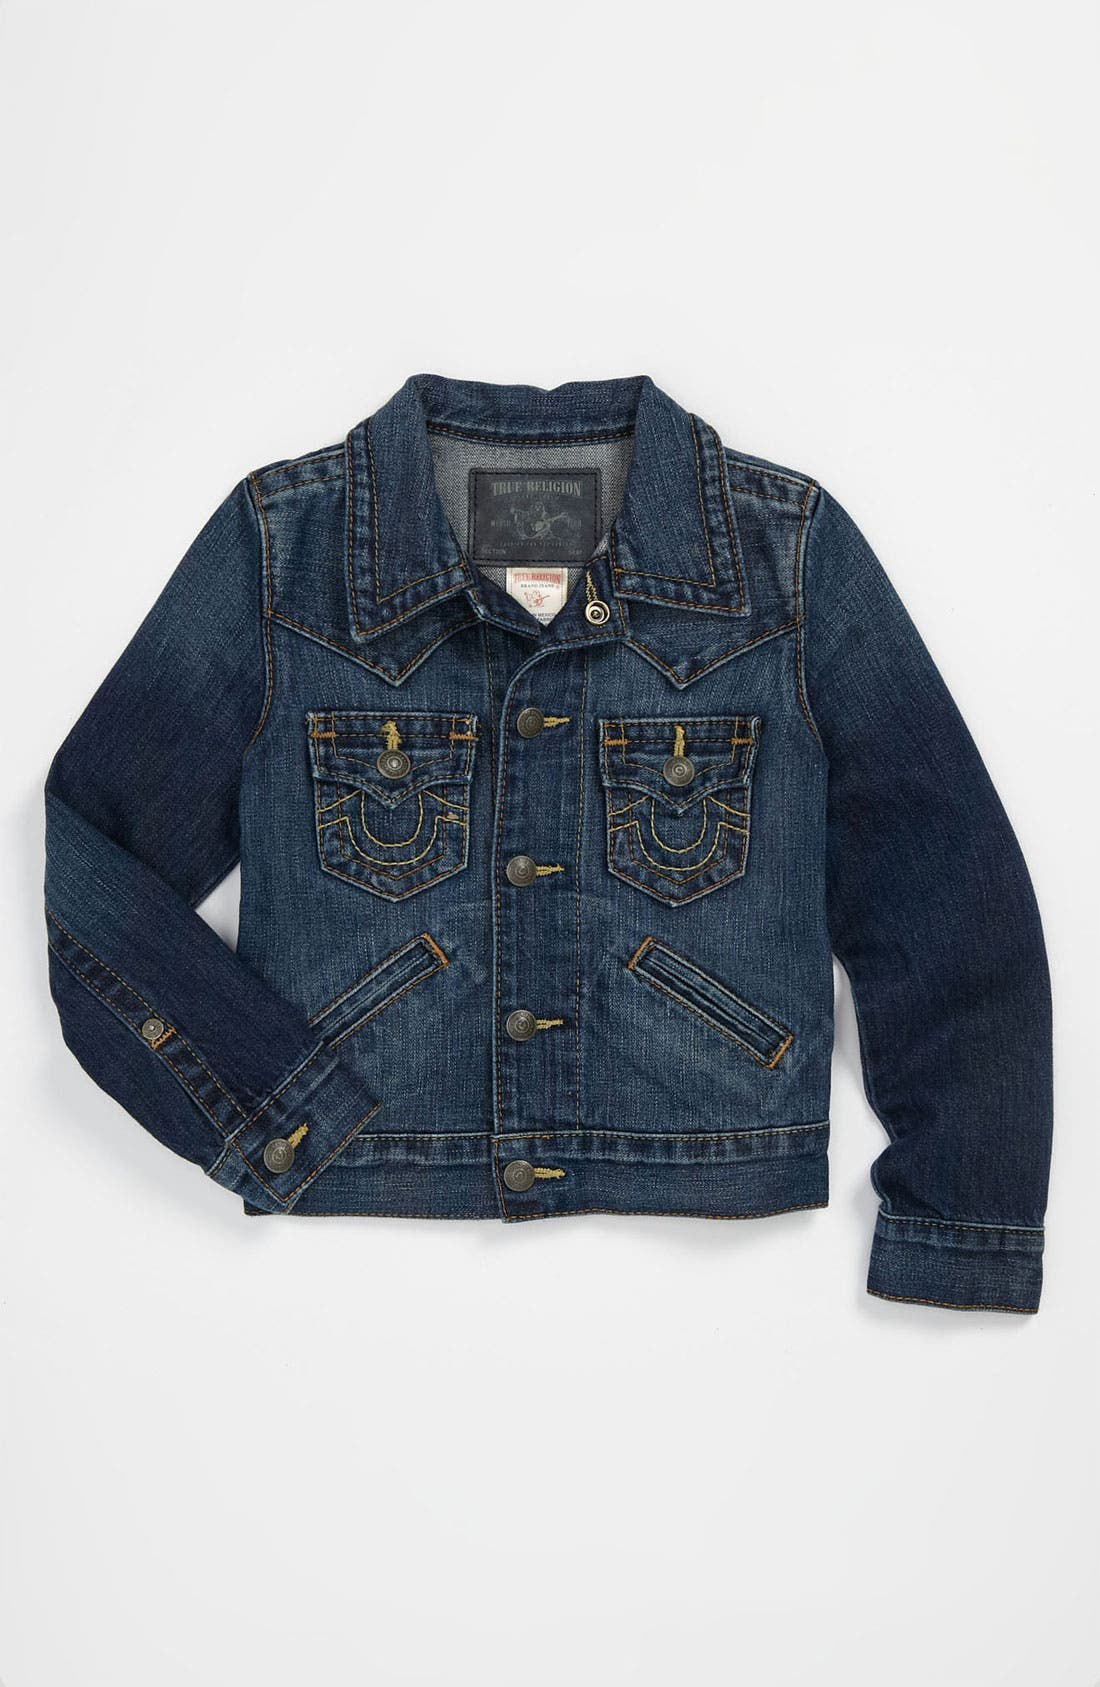 Alternate Image 1 Selected - True Religion Brand Jeans 'Johnny' Denim Jacket (Big Boys)